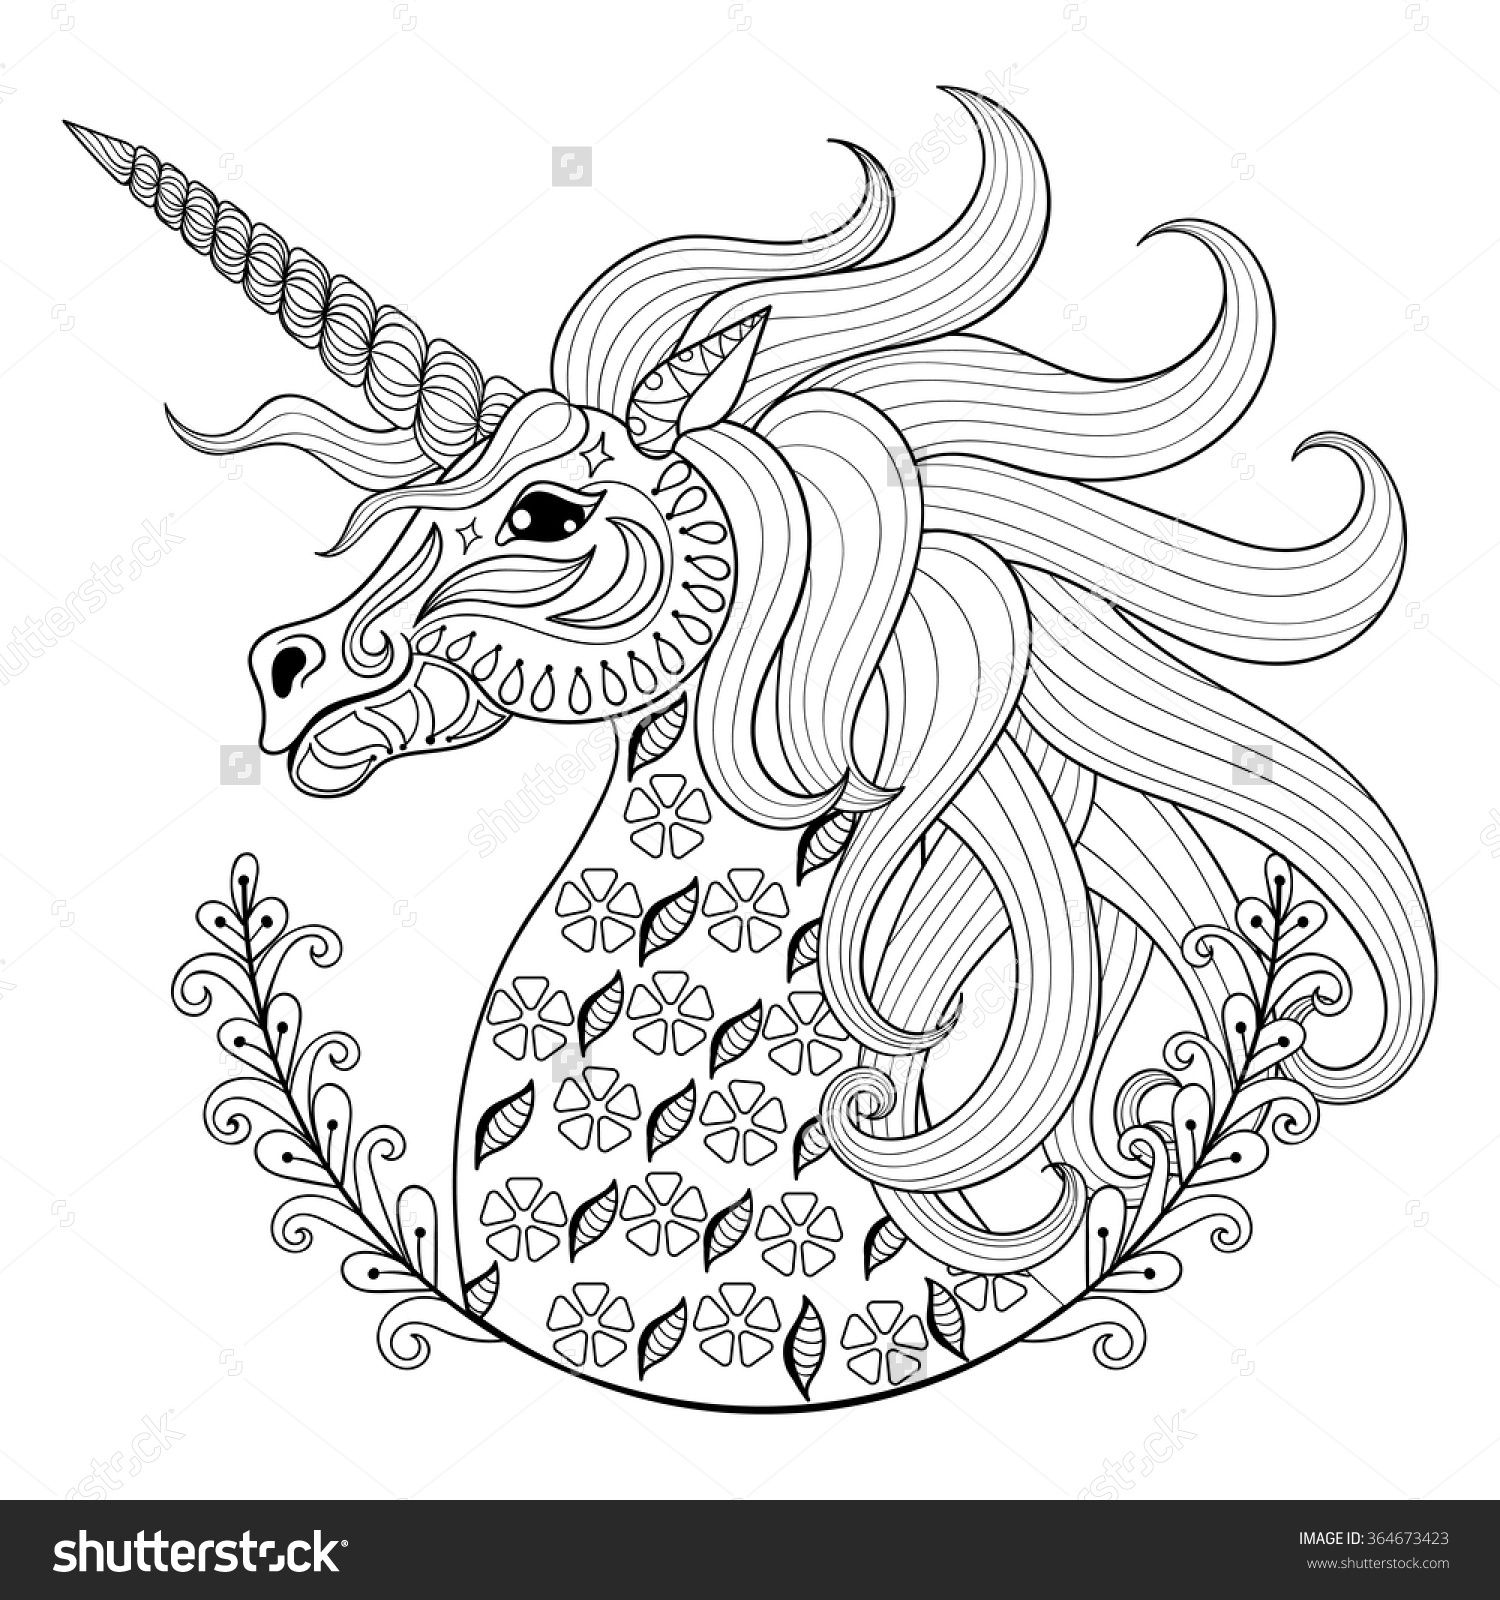 tribal animal coloring pages - photo#18